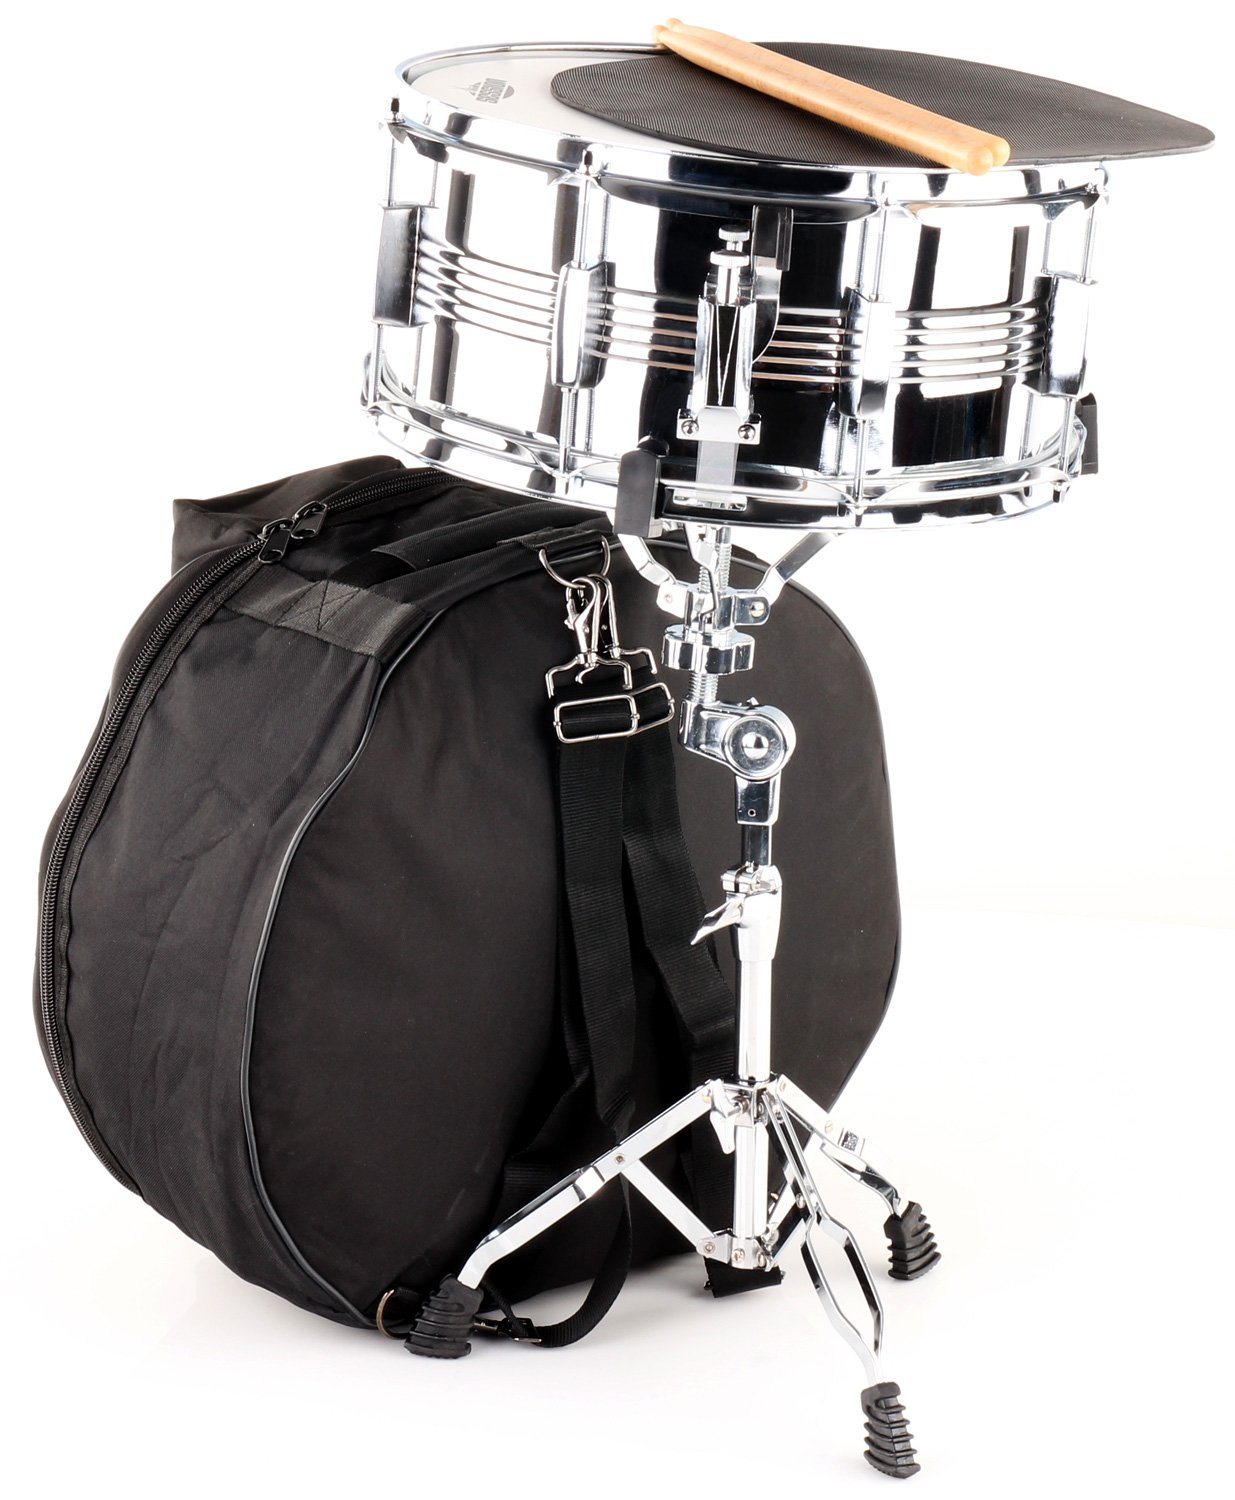 XDrum Snare Drum Starter Set by XDrum (Image #1)